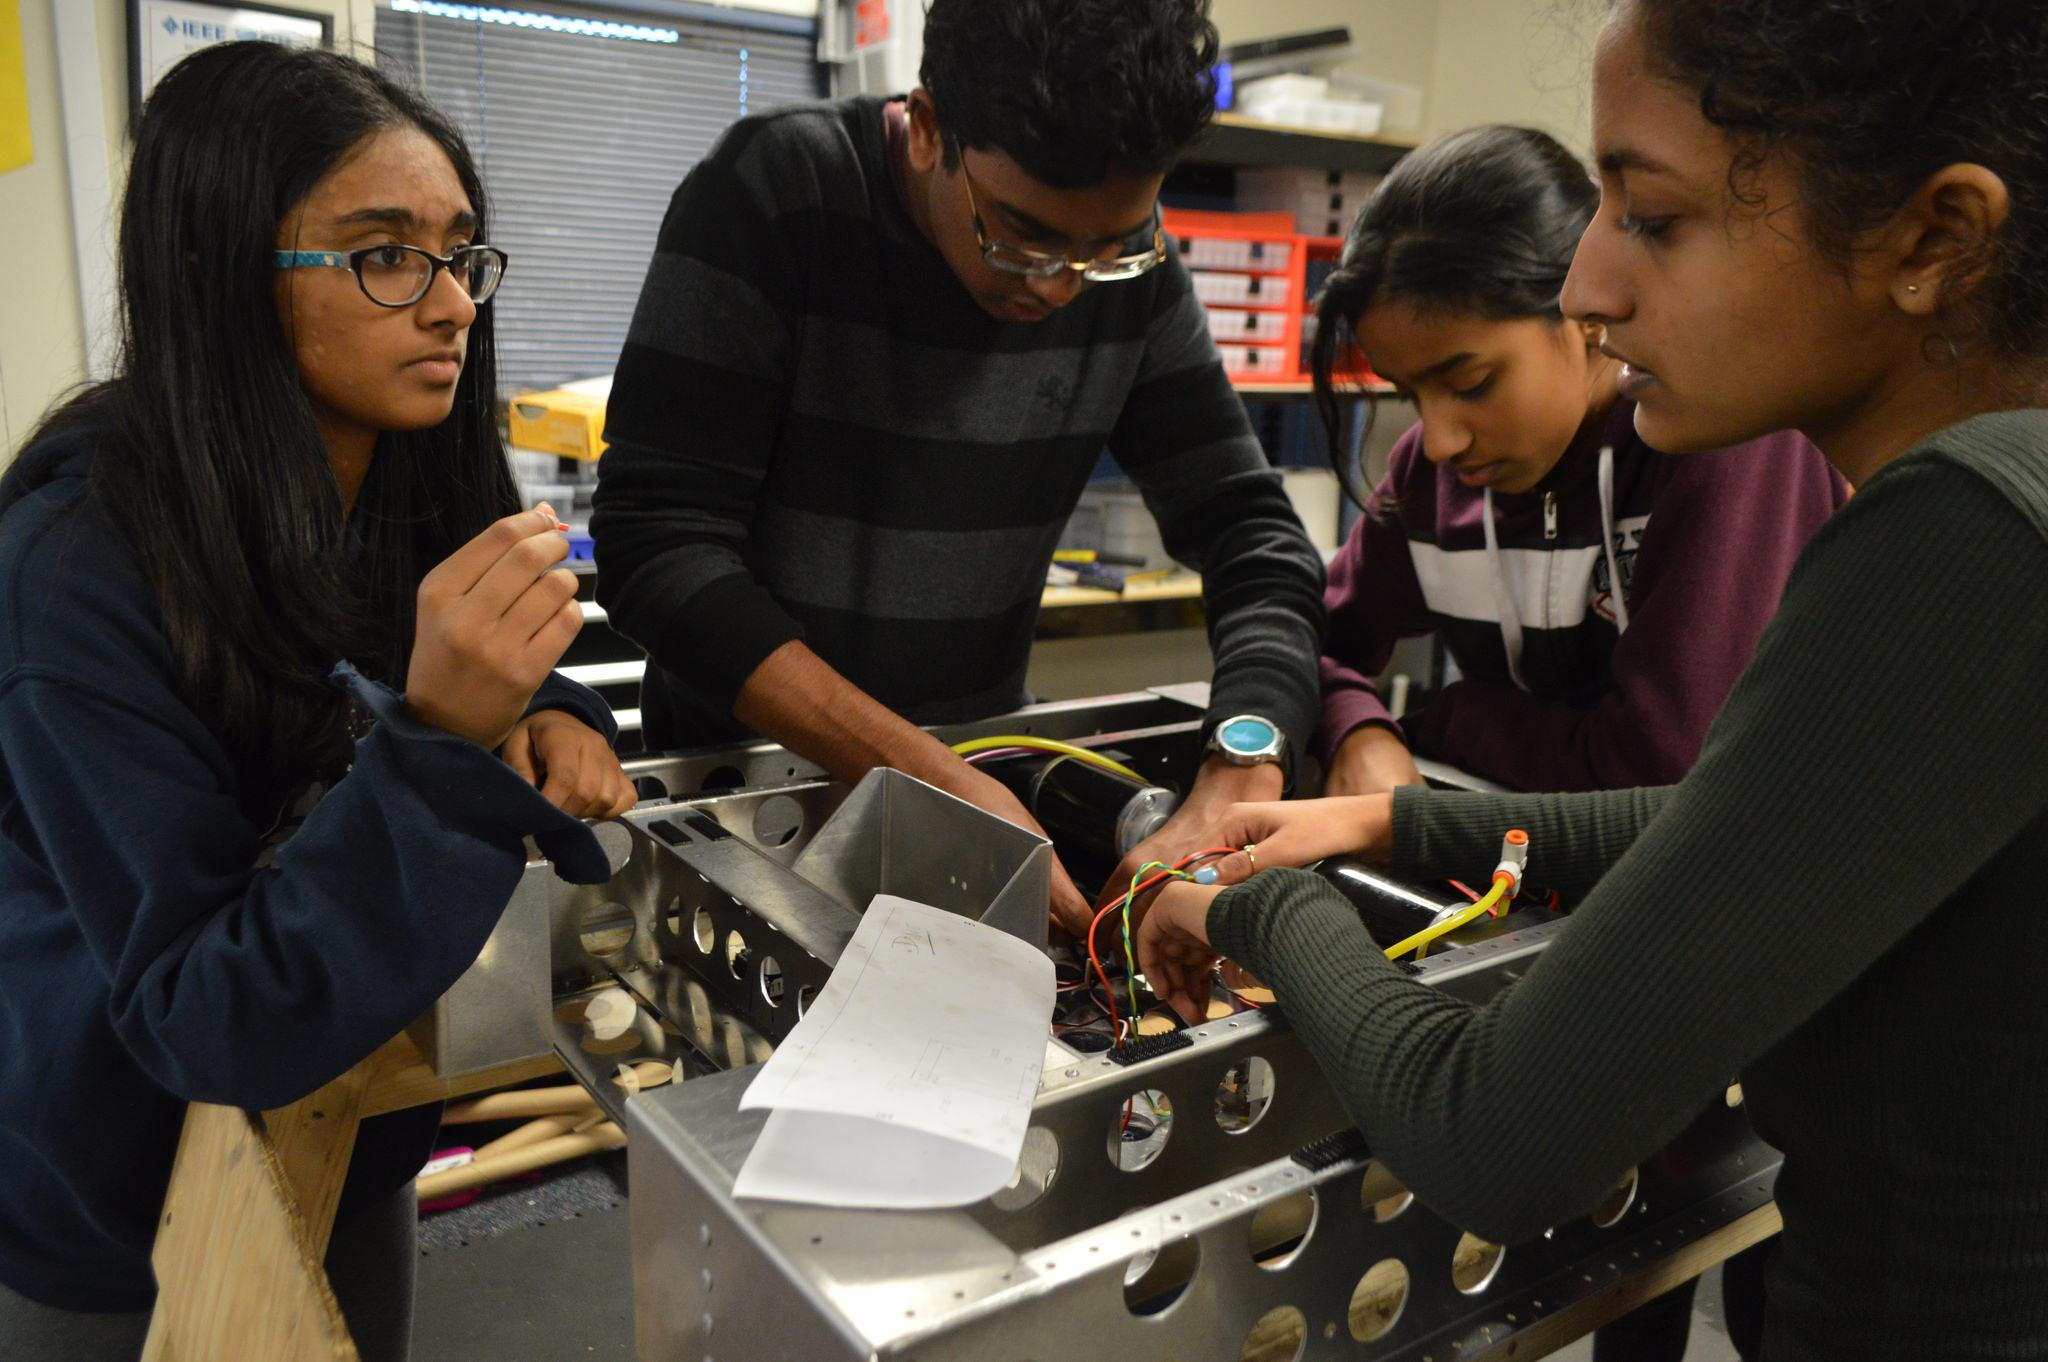 Palla works with three female members to adjust components of the robot. This year, MVRT aims to encourage girls to participate equally throughout the build season.